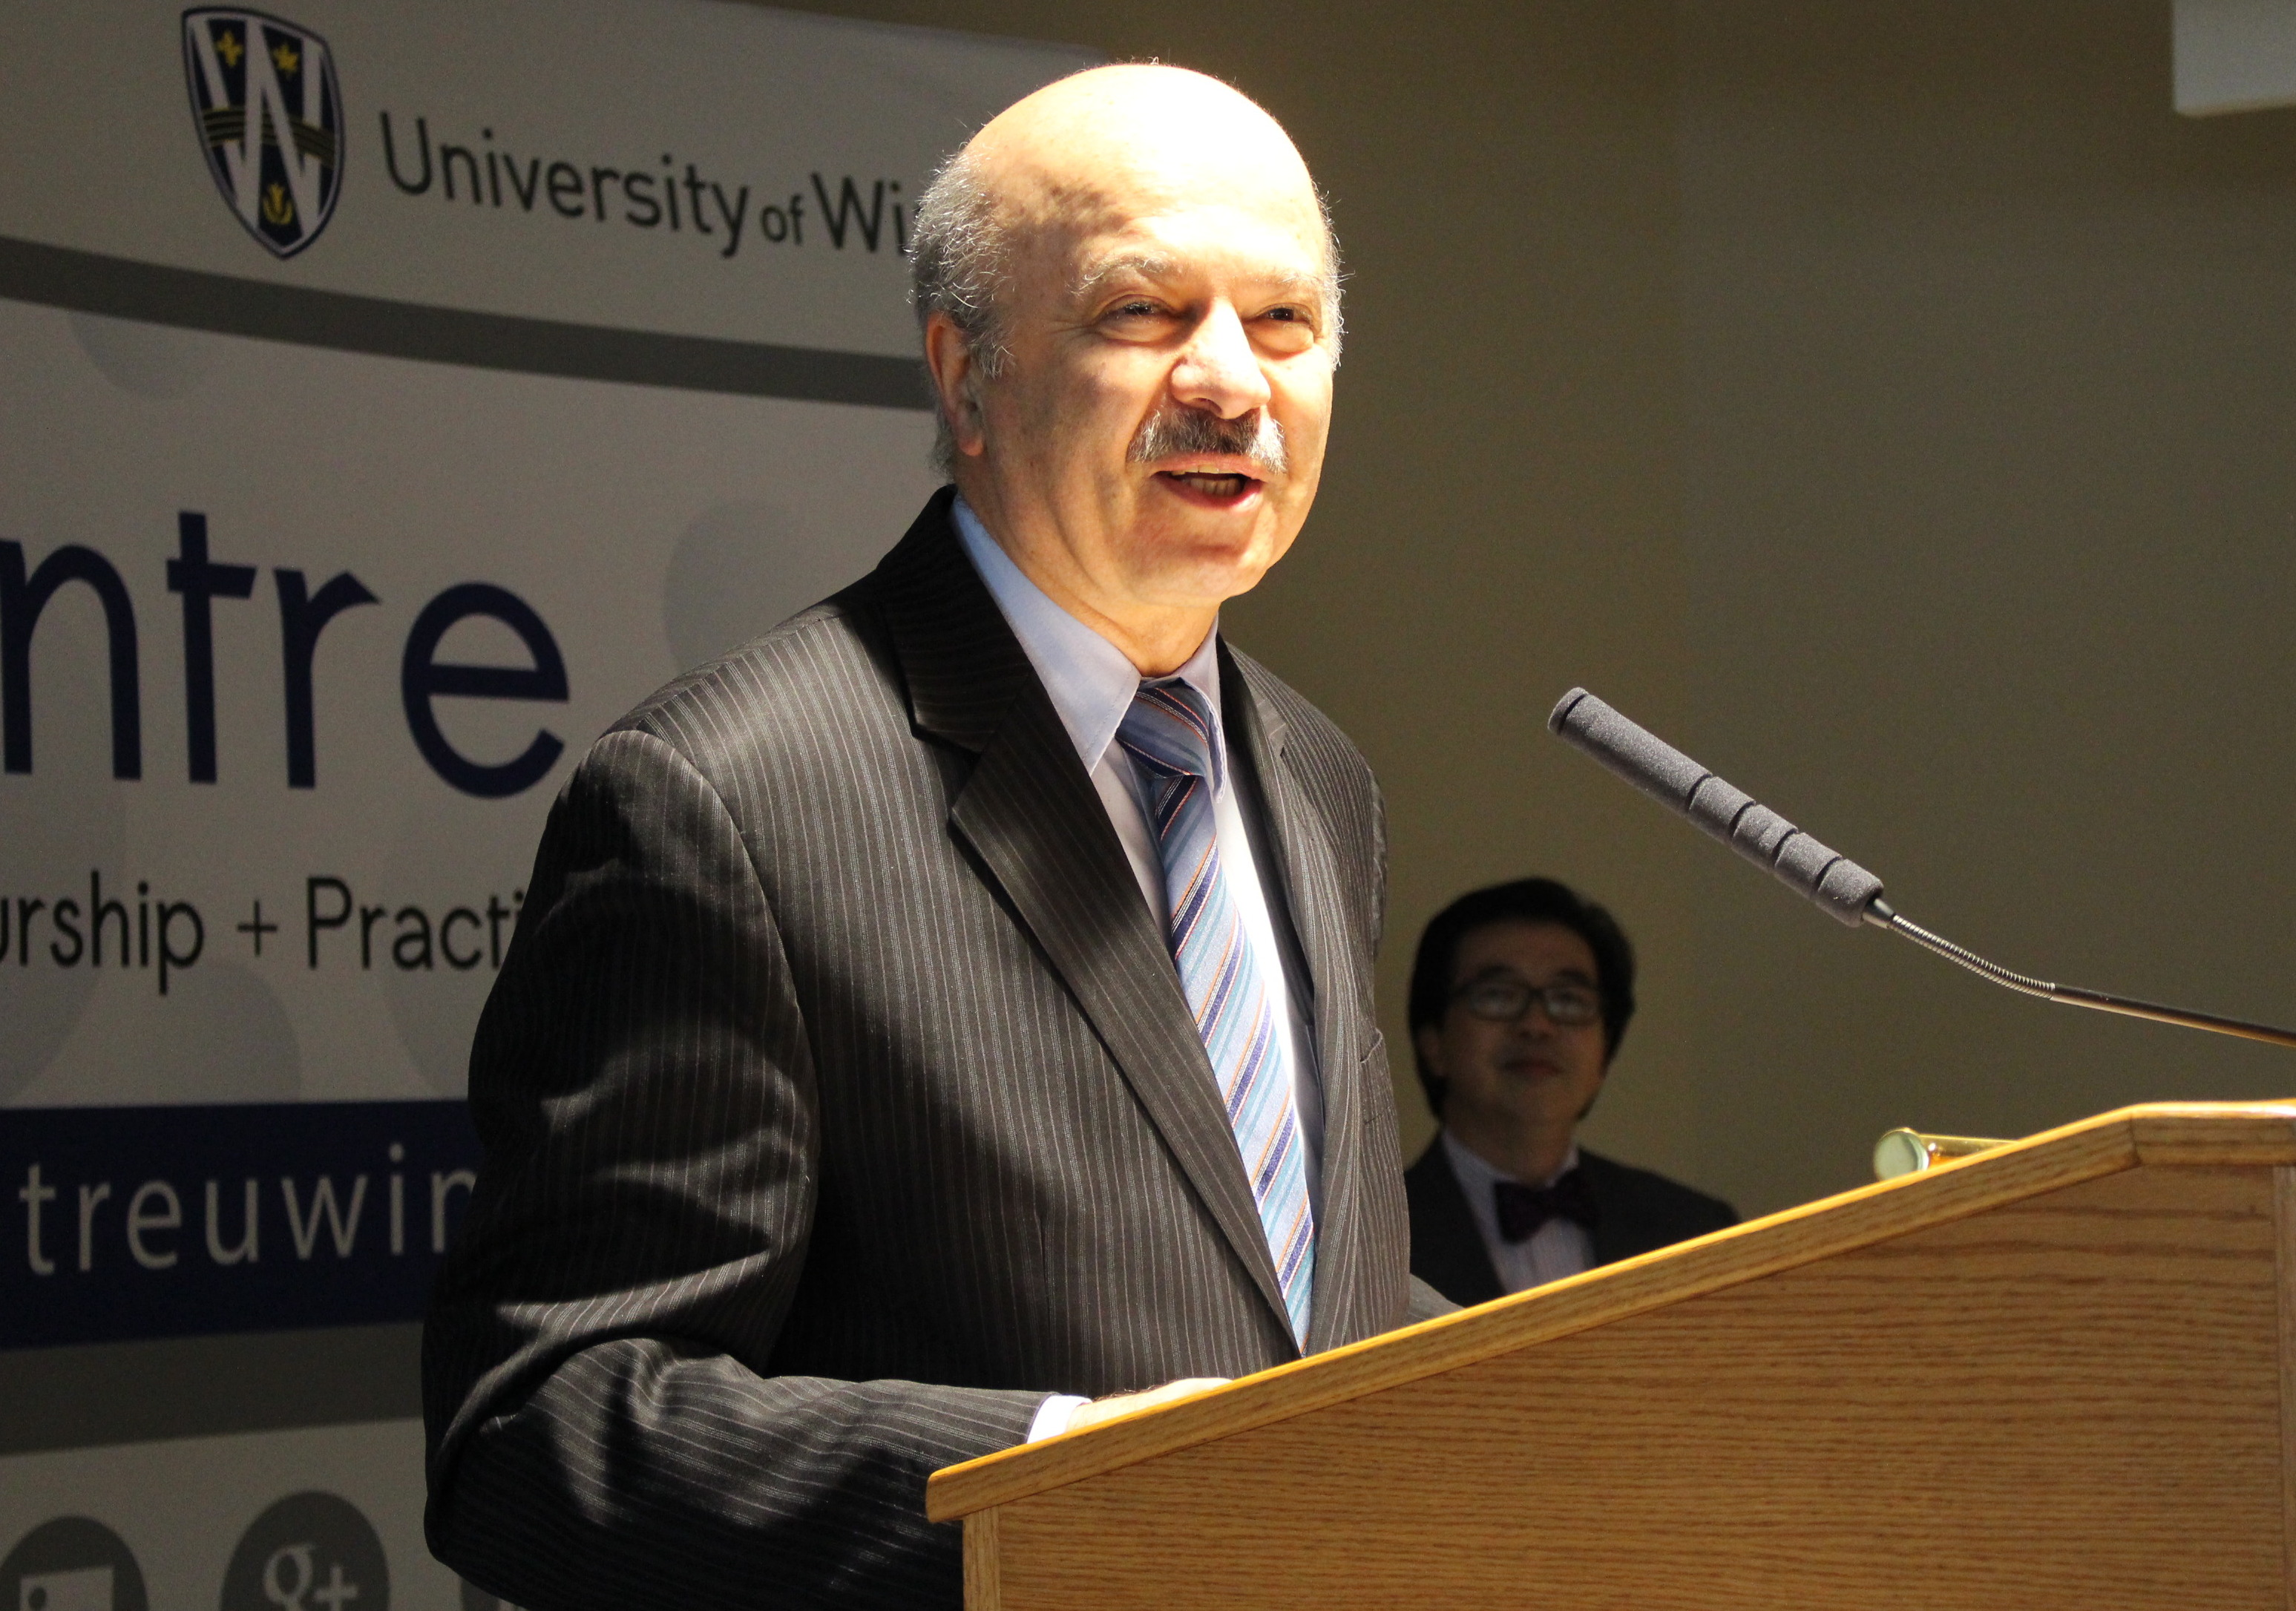 Ontario Minister of Research and Innovation Reza Moridi speaks to a crowd at the University of Windsor's EPICentre, January 20, 2015. (Photo by Mike Vlasveld)